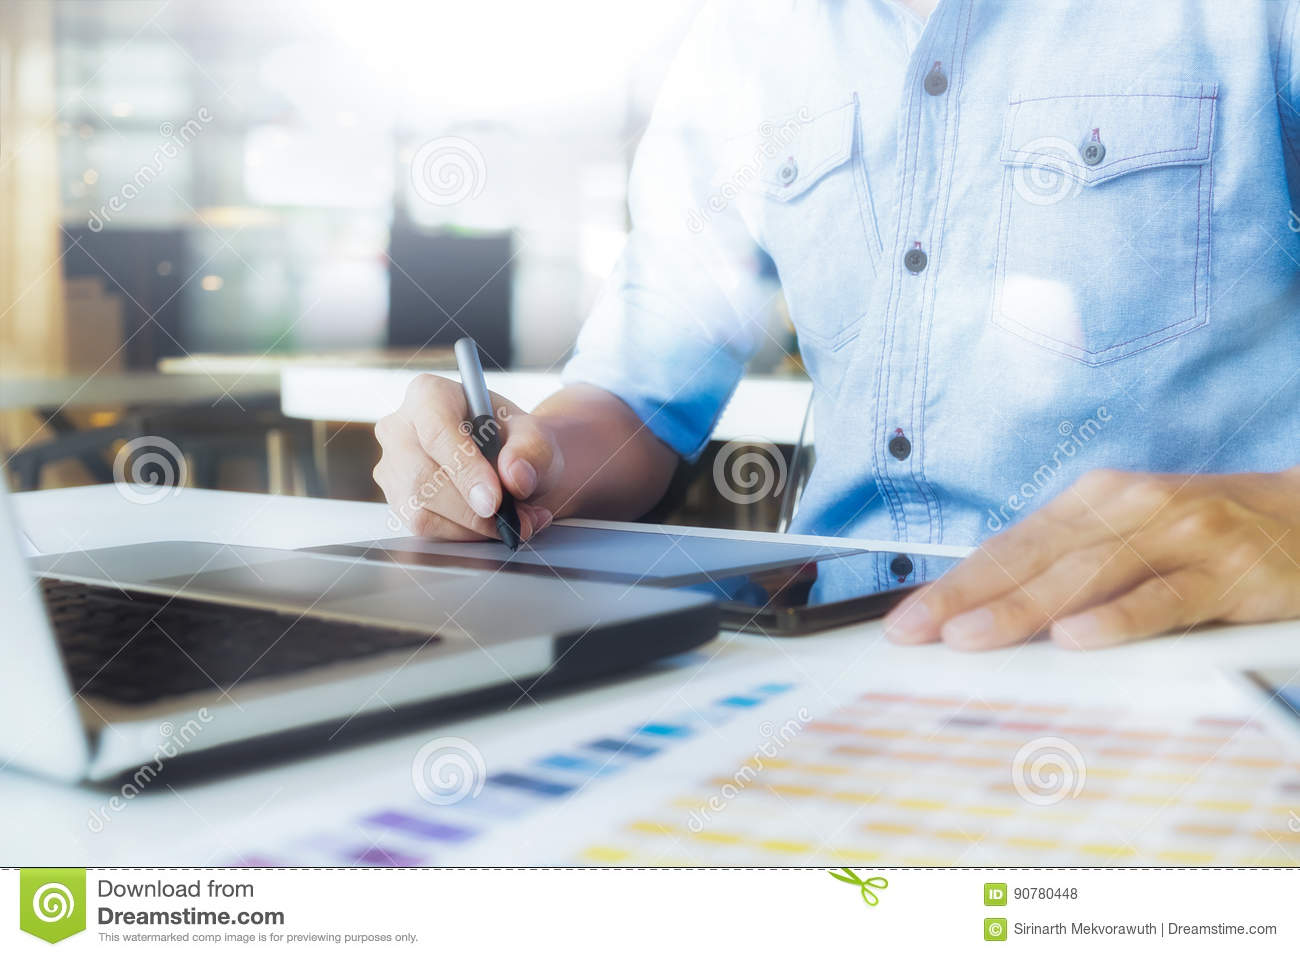 Artist drawing on graphic tablet with color swatches in office.